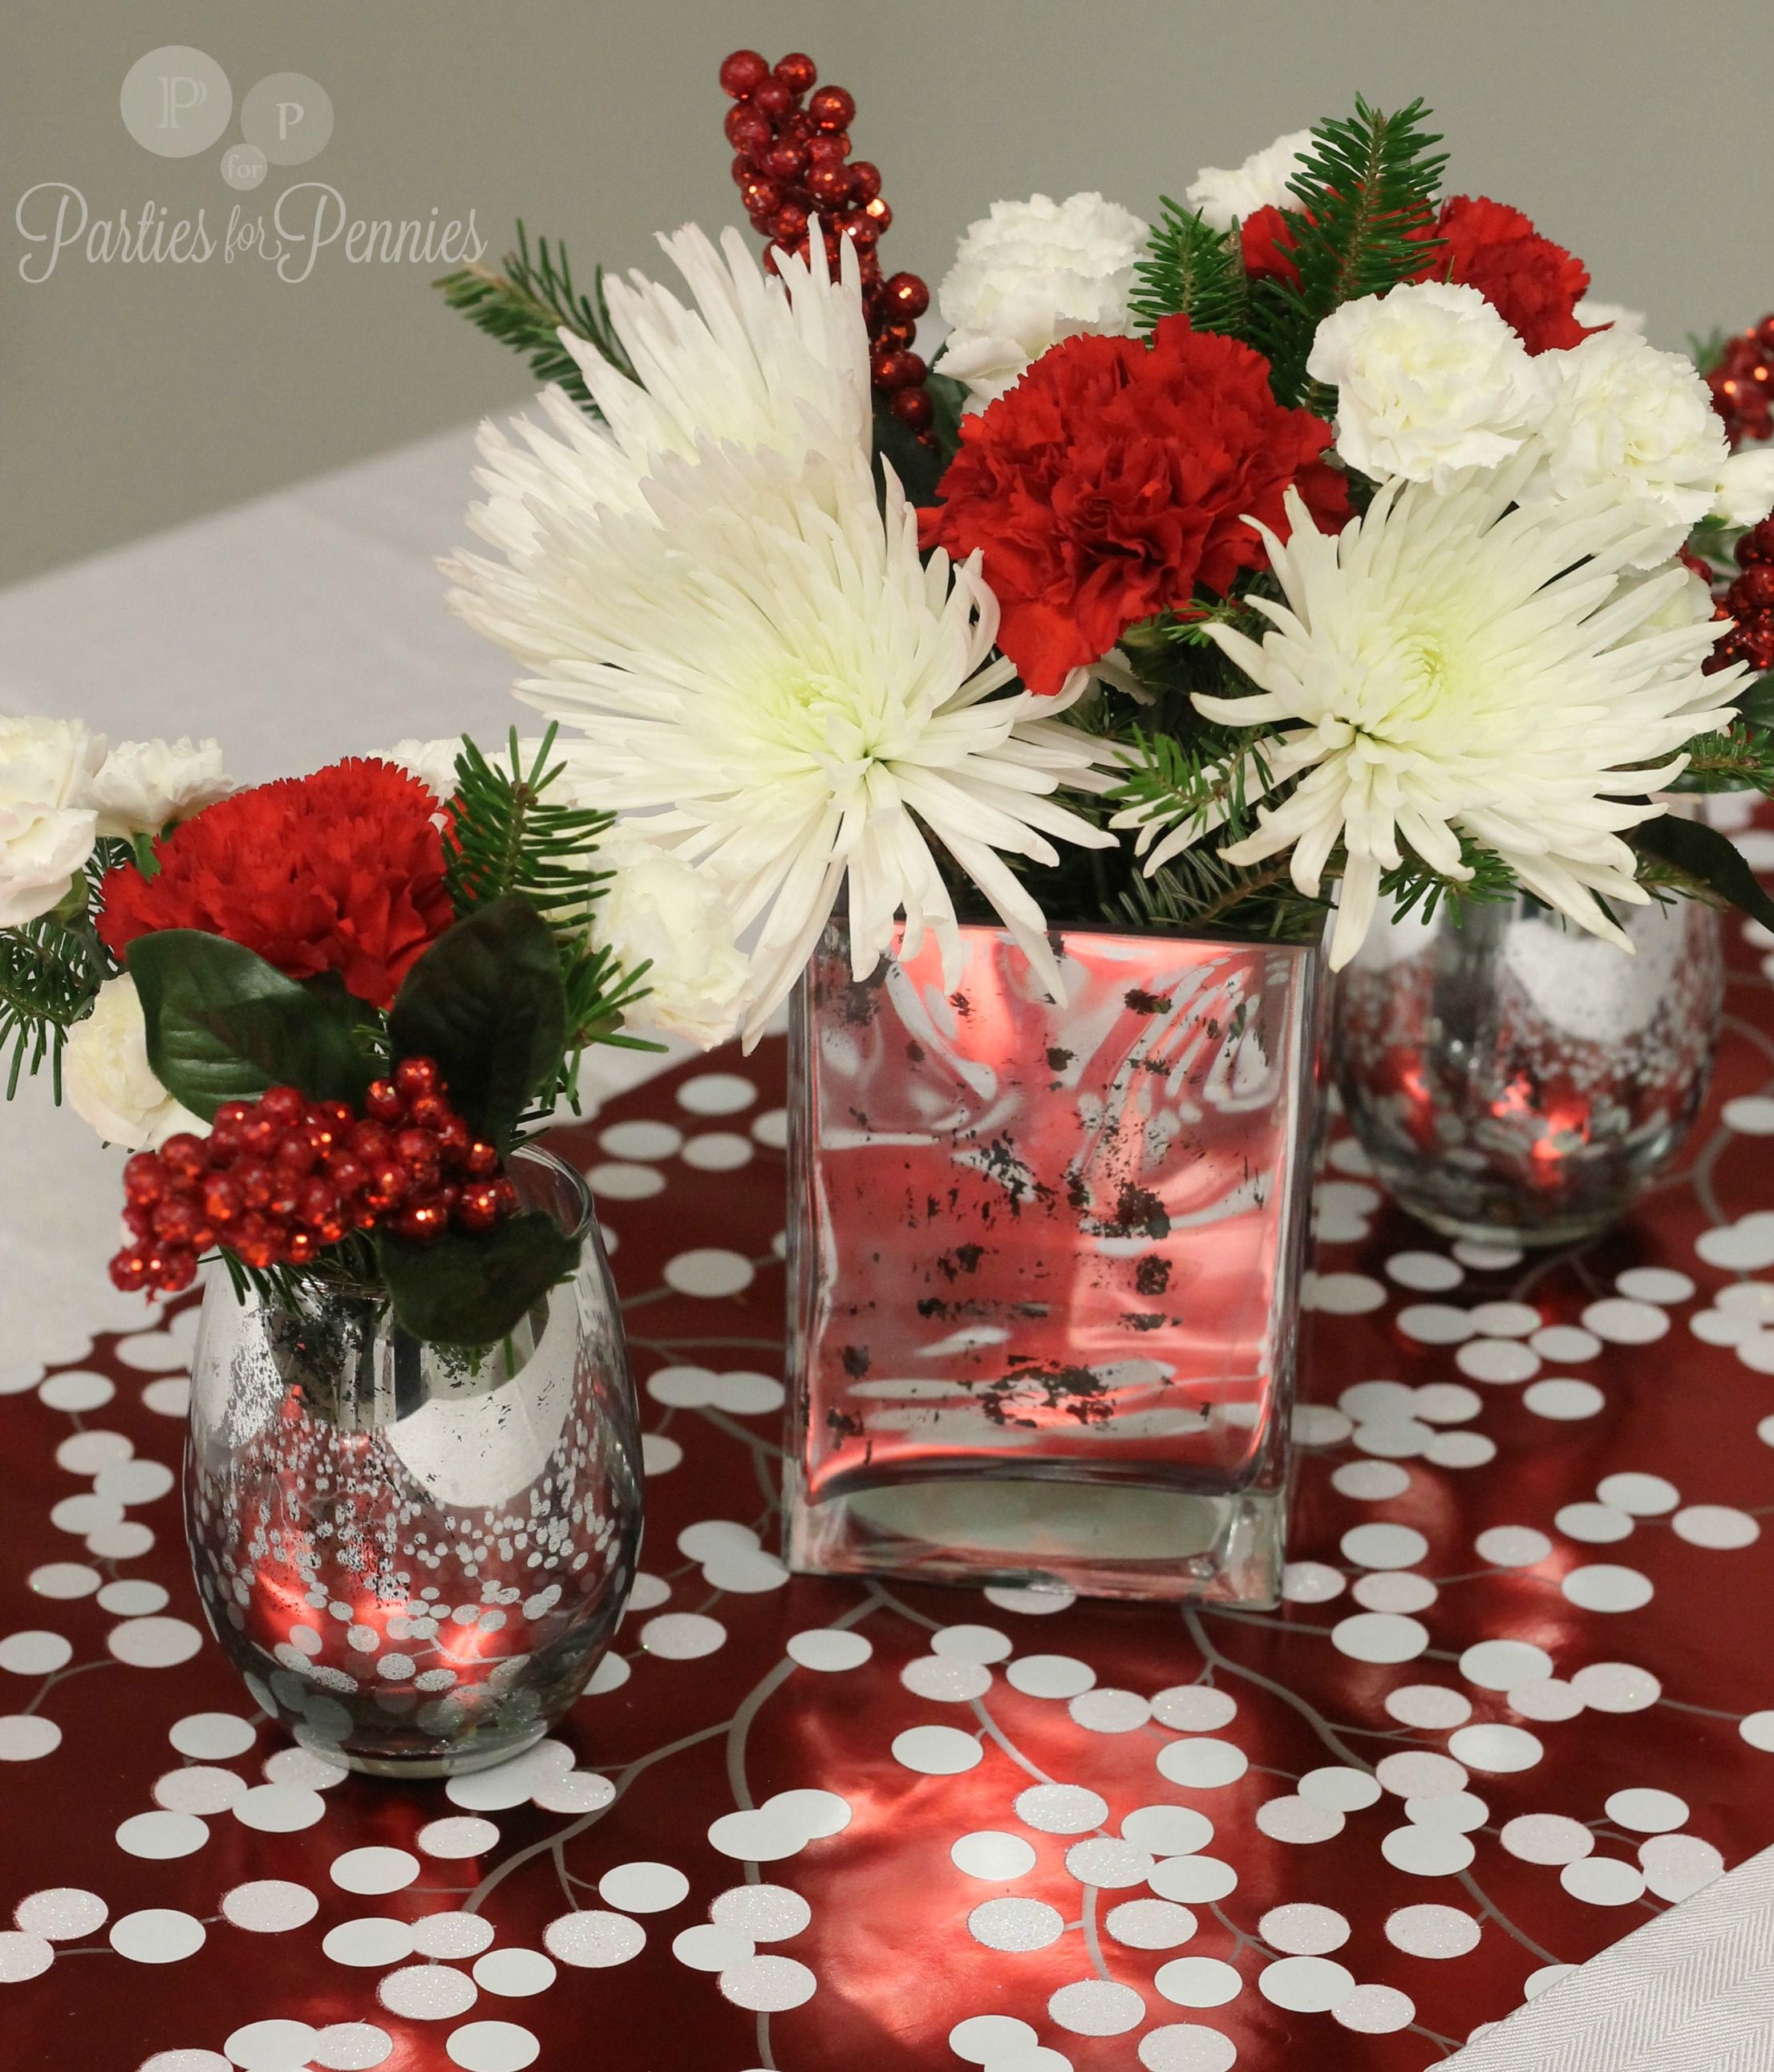 Christmas table decoration ideas for parties - Christmas Party Centerpiece Ideas Wallpaper Christmas Centerpieces 2212x2584 Christmas Party Ideas